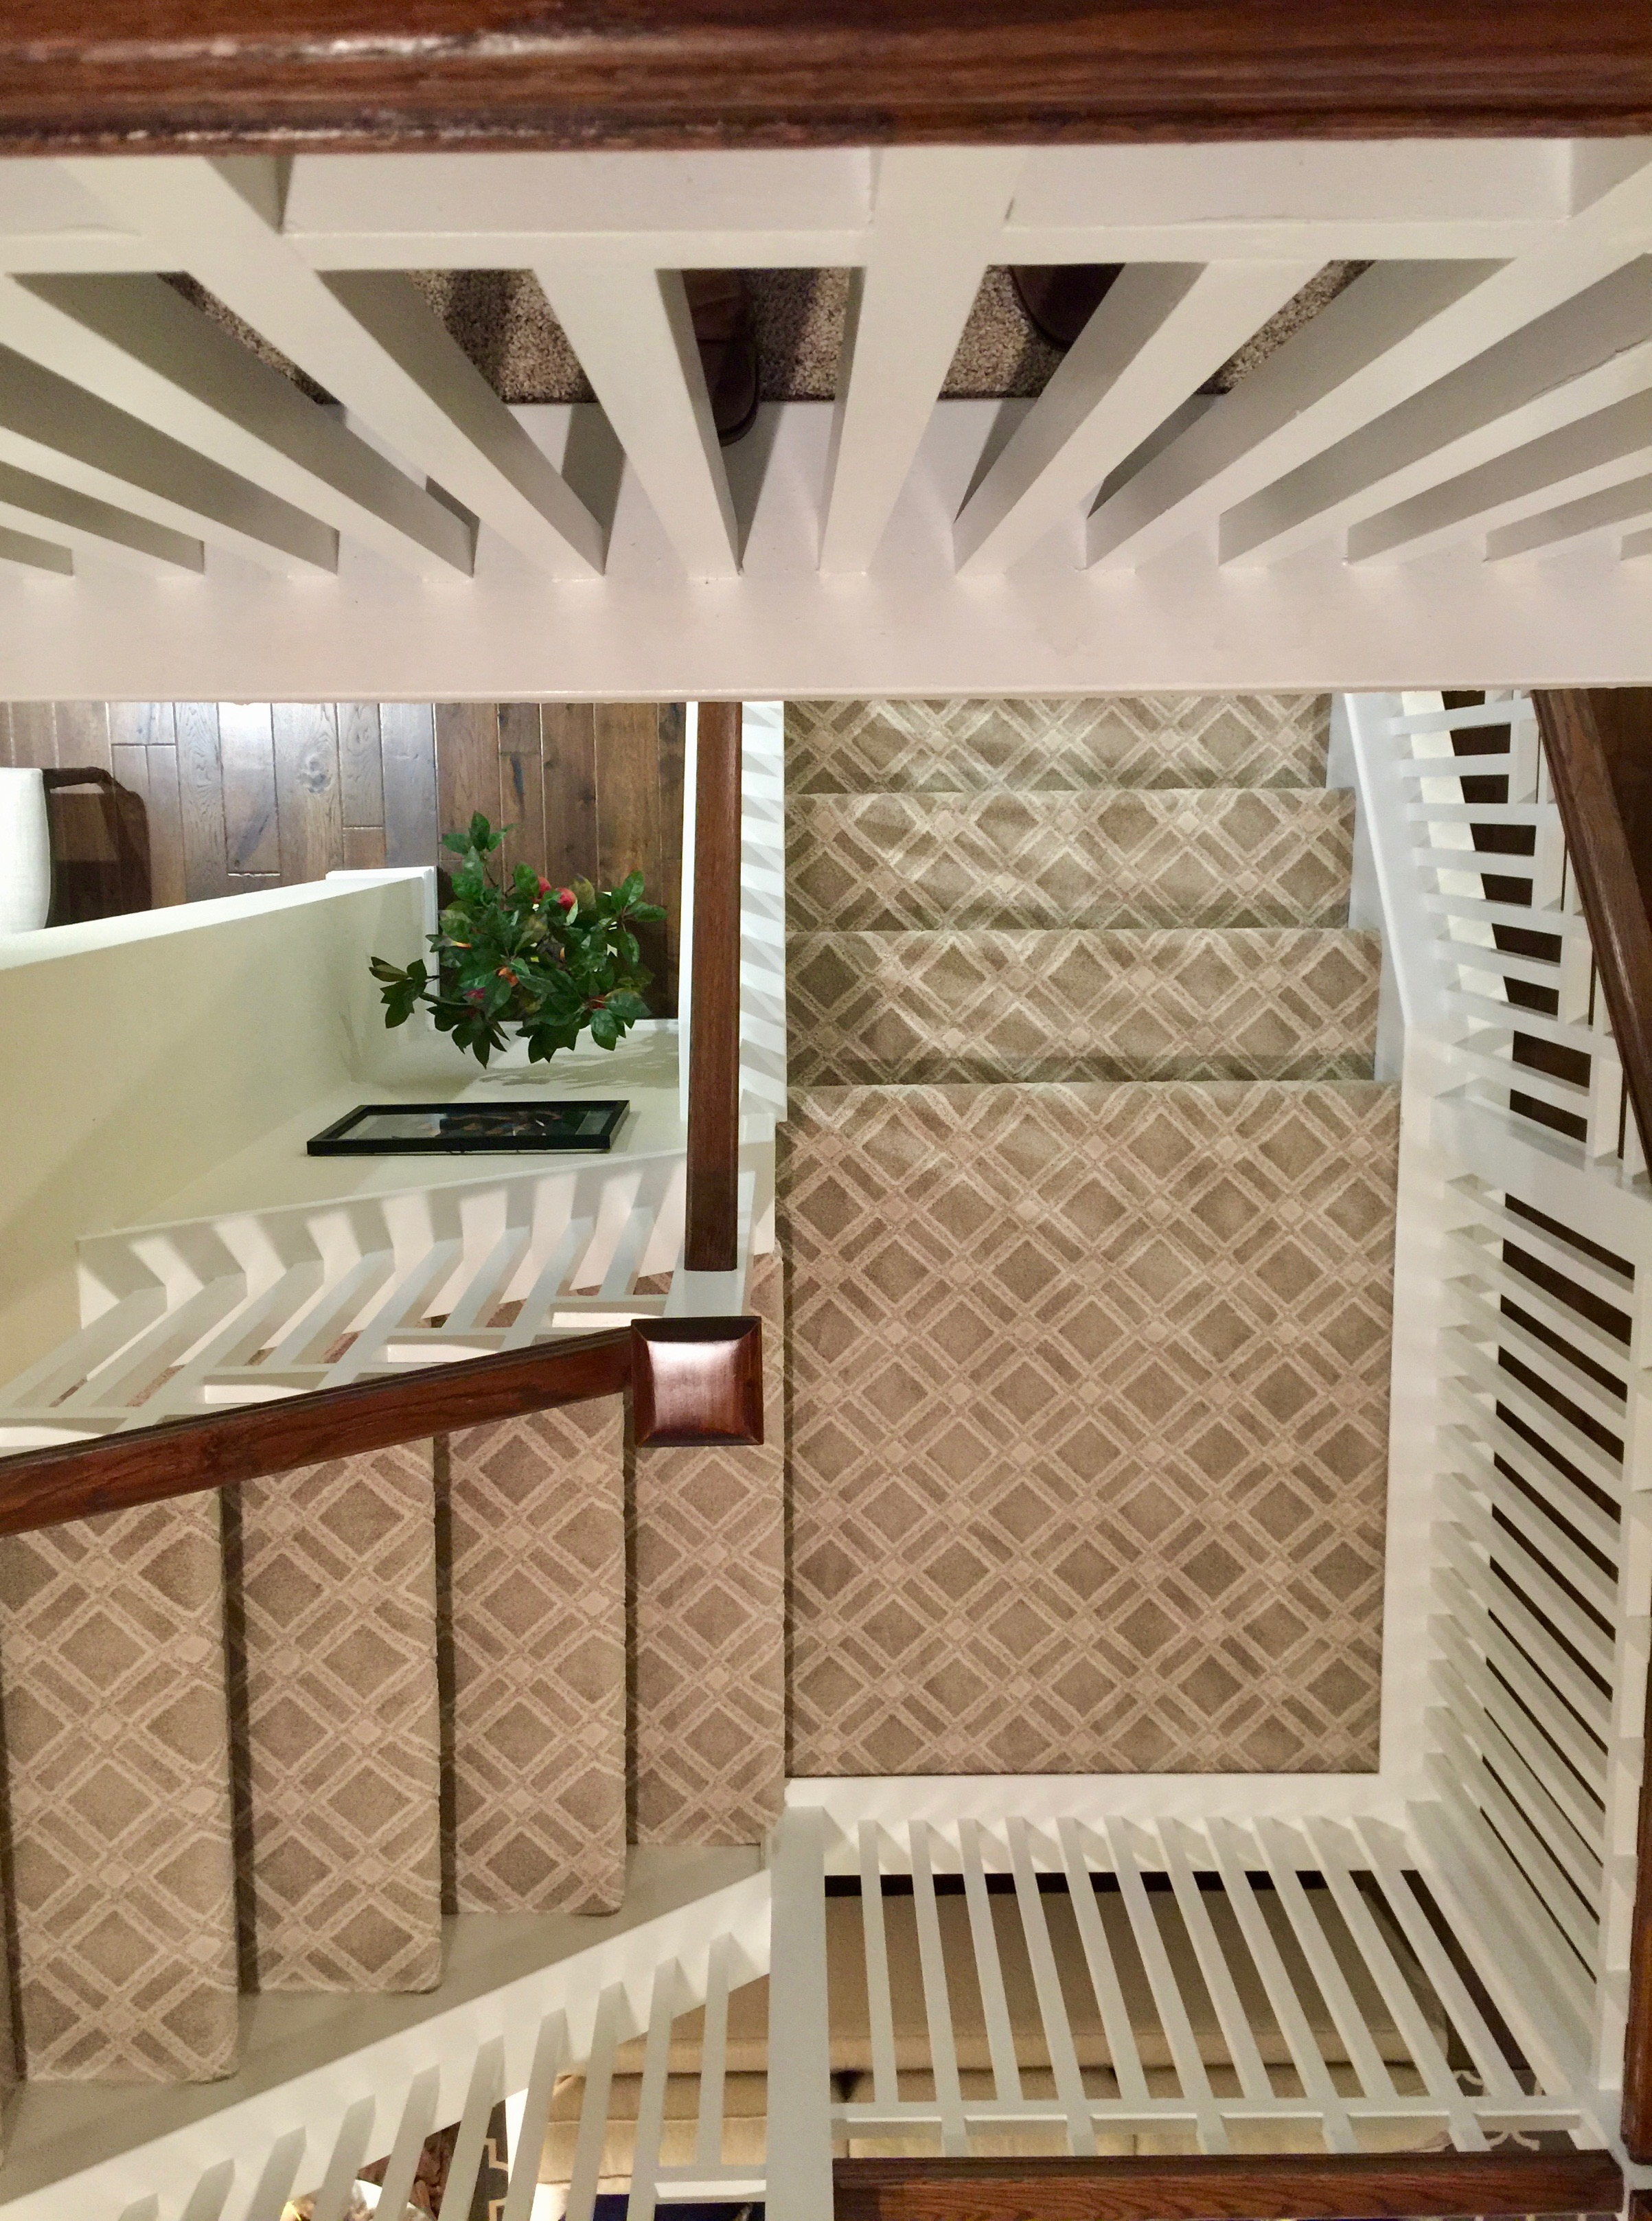 Statement Runner - Each stair installed separately